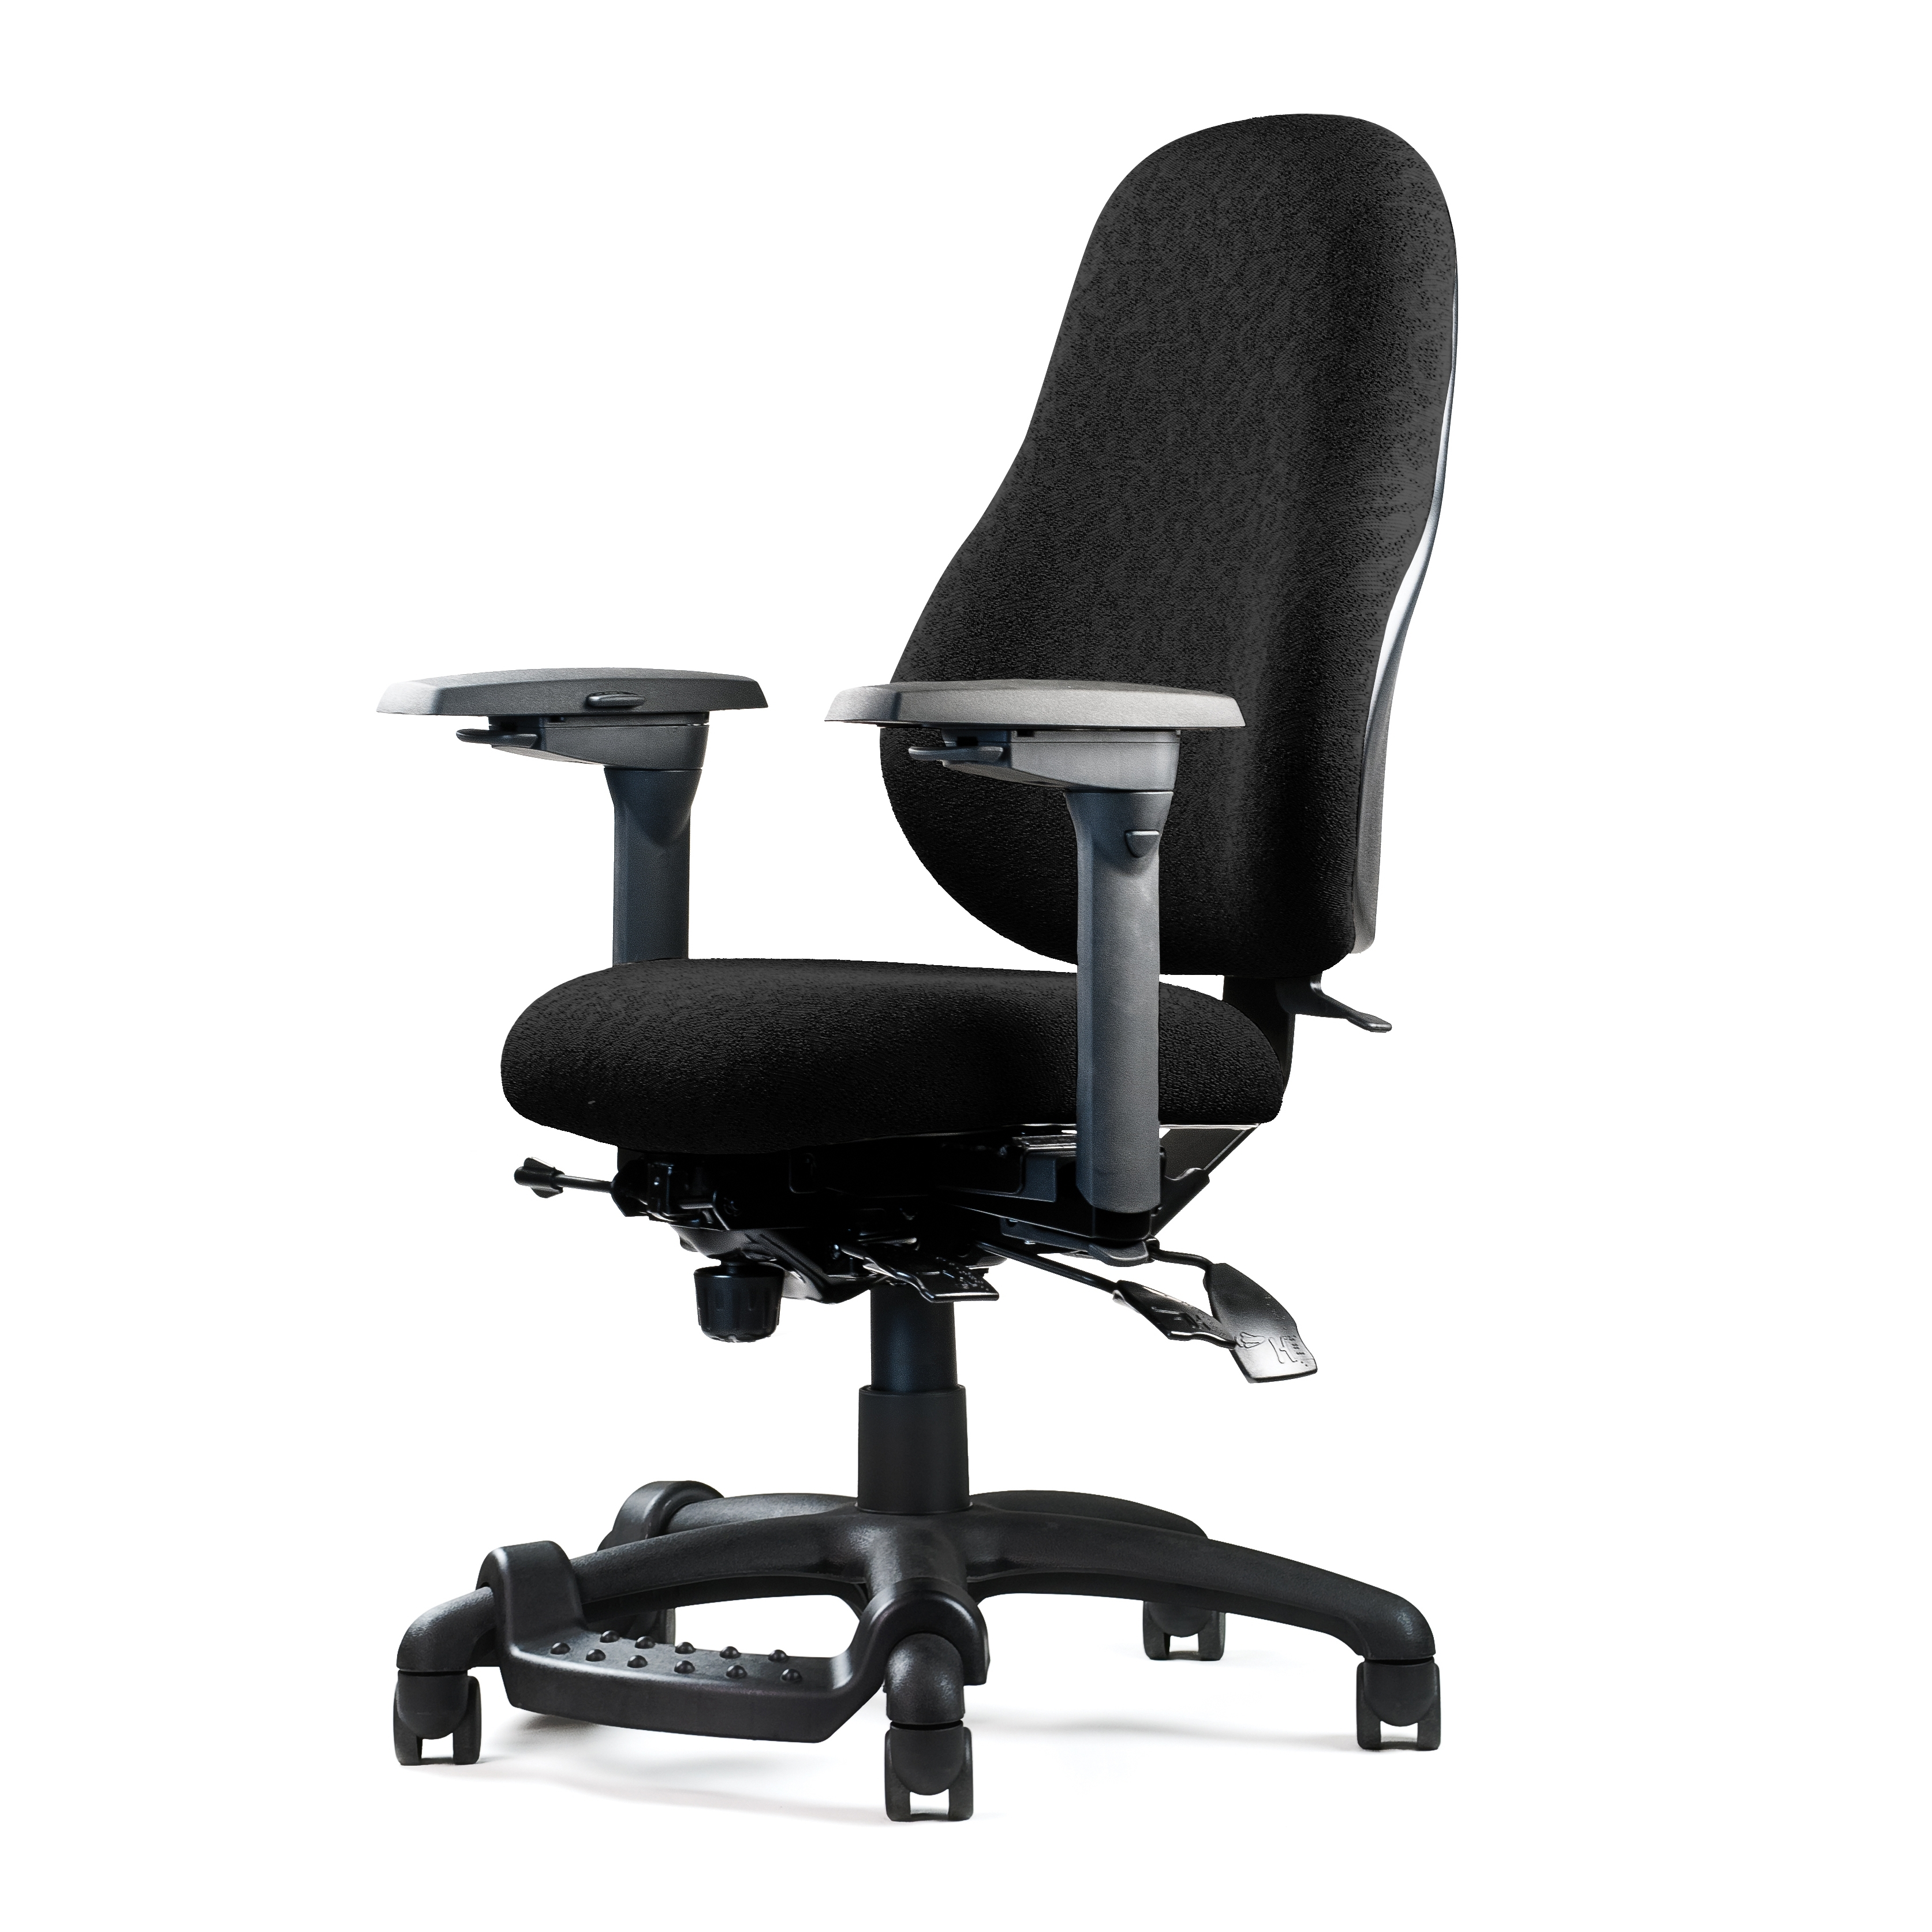 Favorite Executive Office Chairs With Leg Rest Regarding Executive Office Chair With Leg Rest • Office Chairs (View 8 of 20)